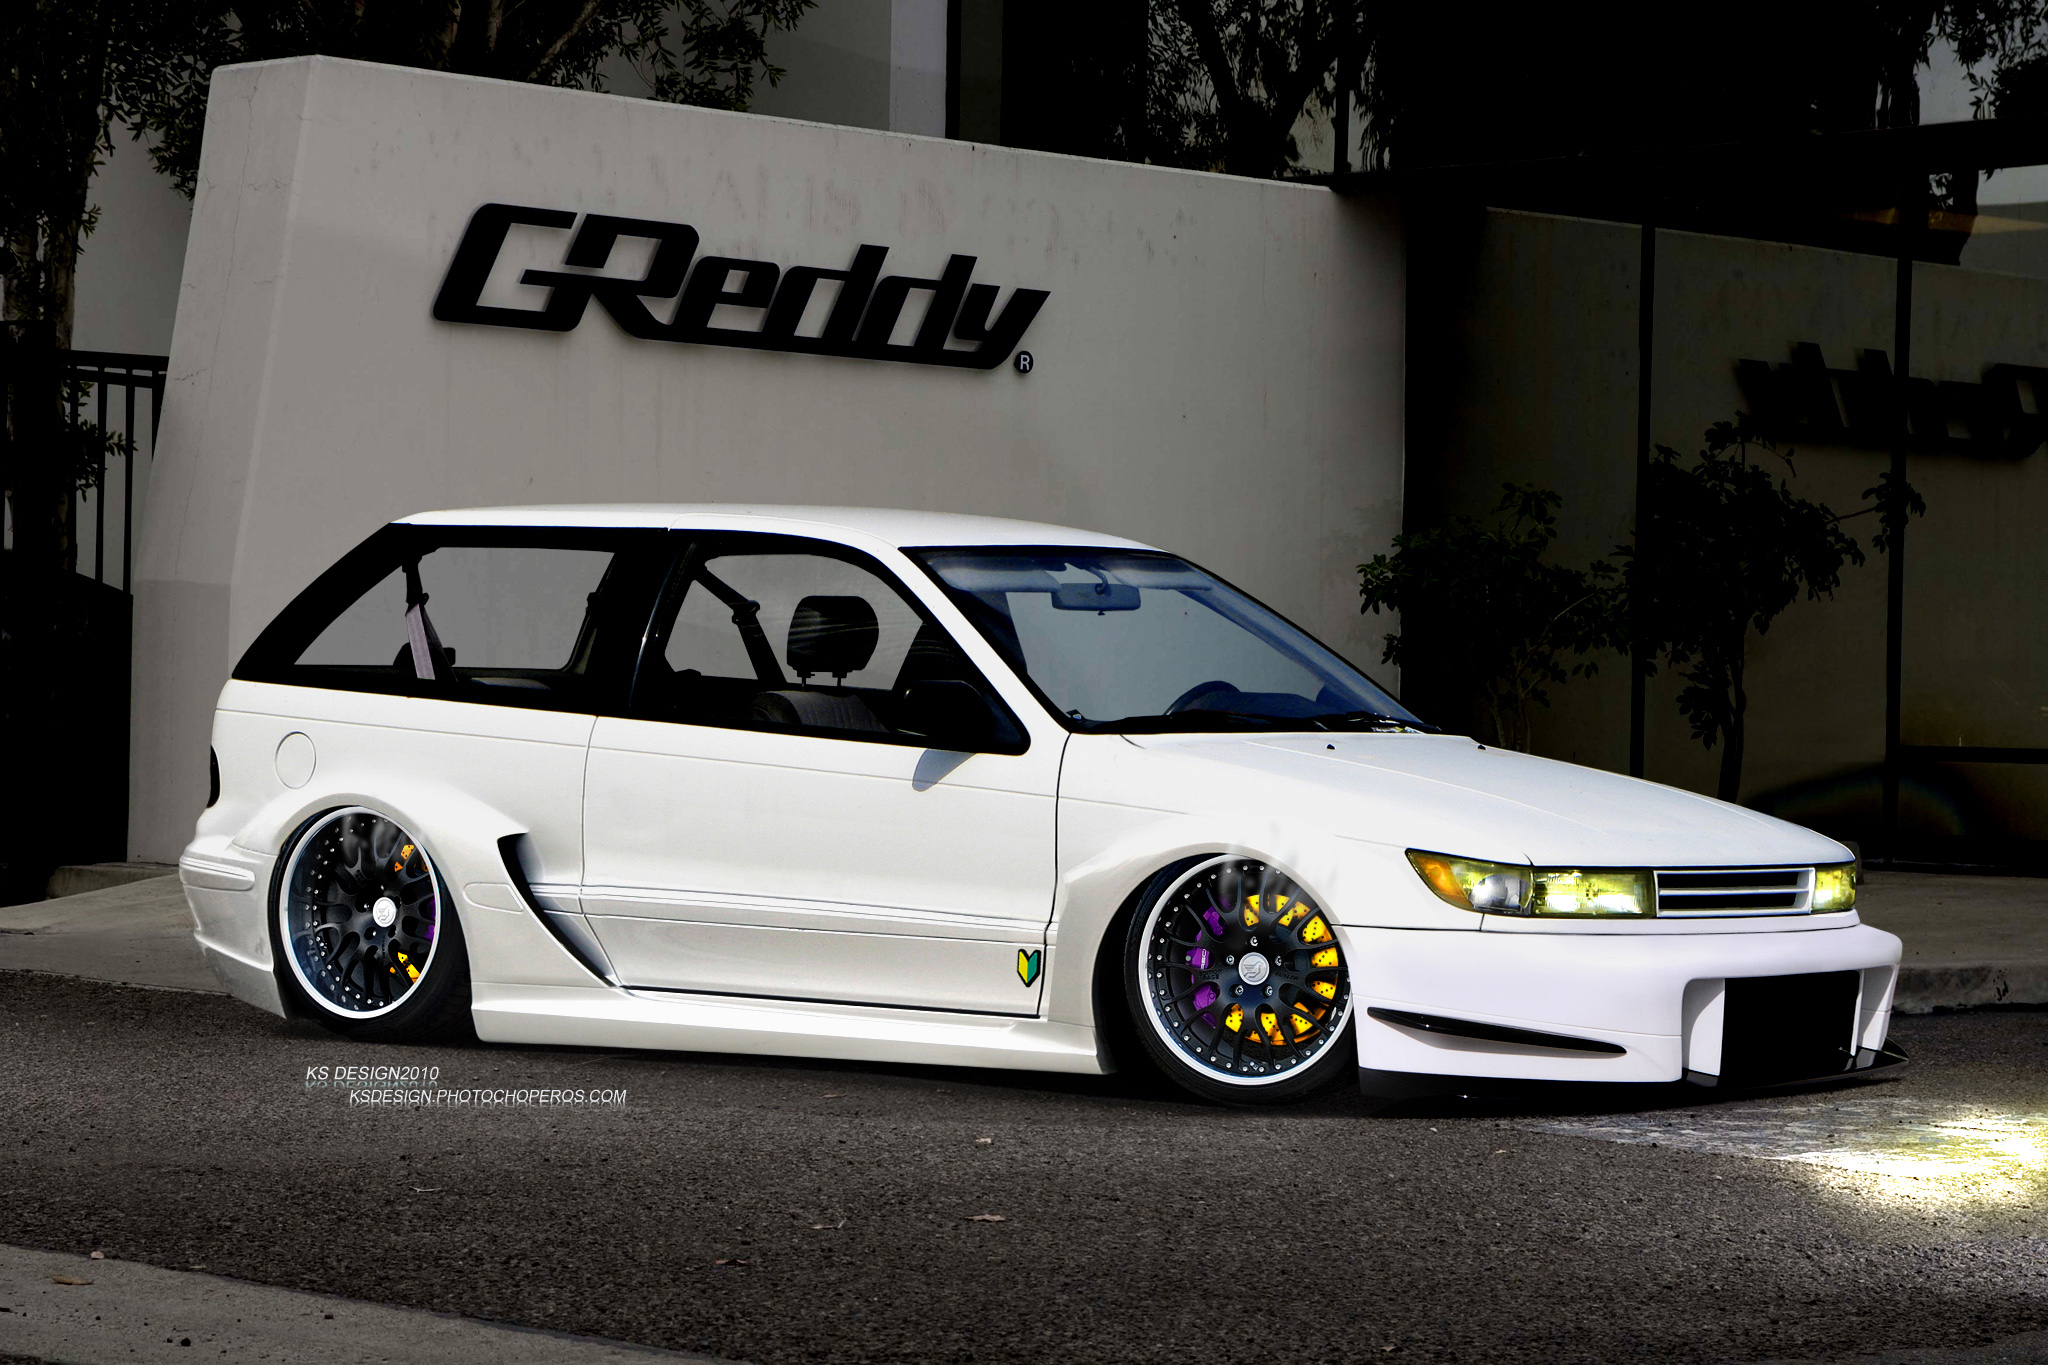 eg9 jdm honda civic ferio sir eg9s can be differentiated from